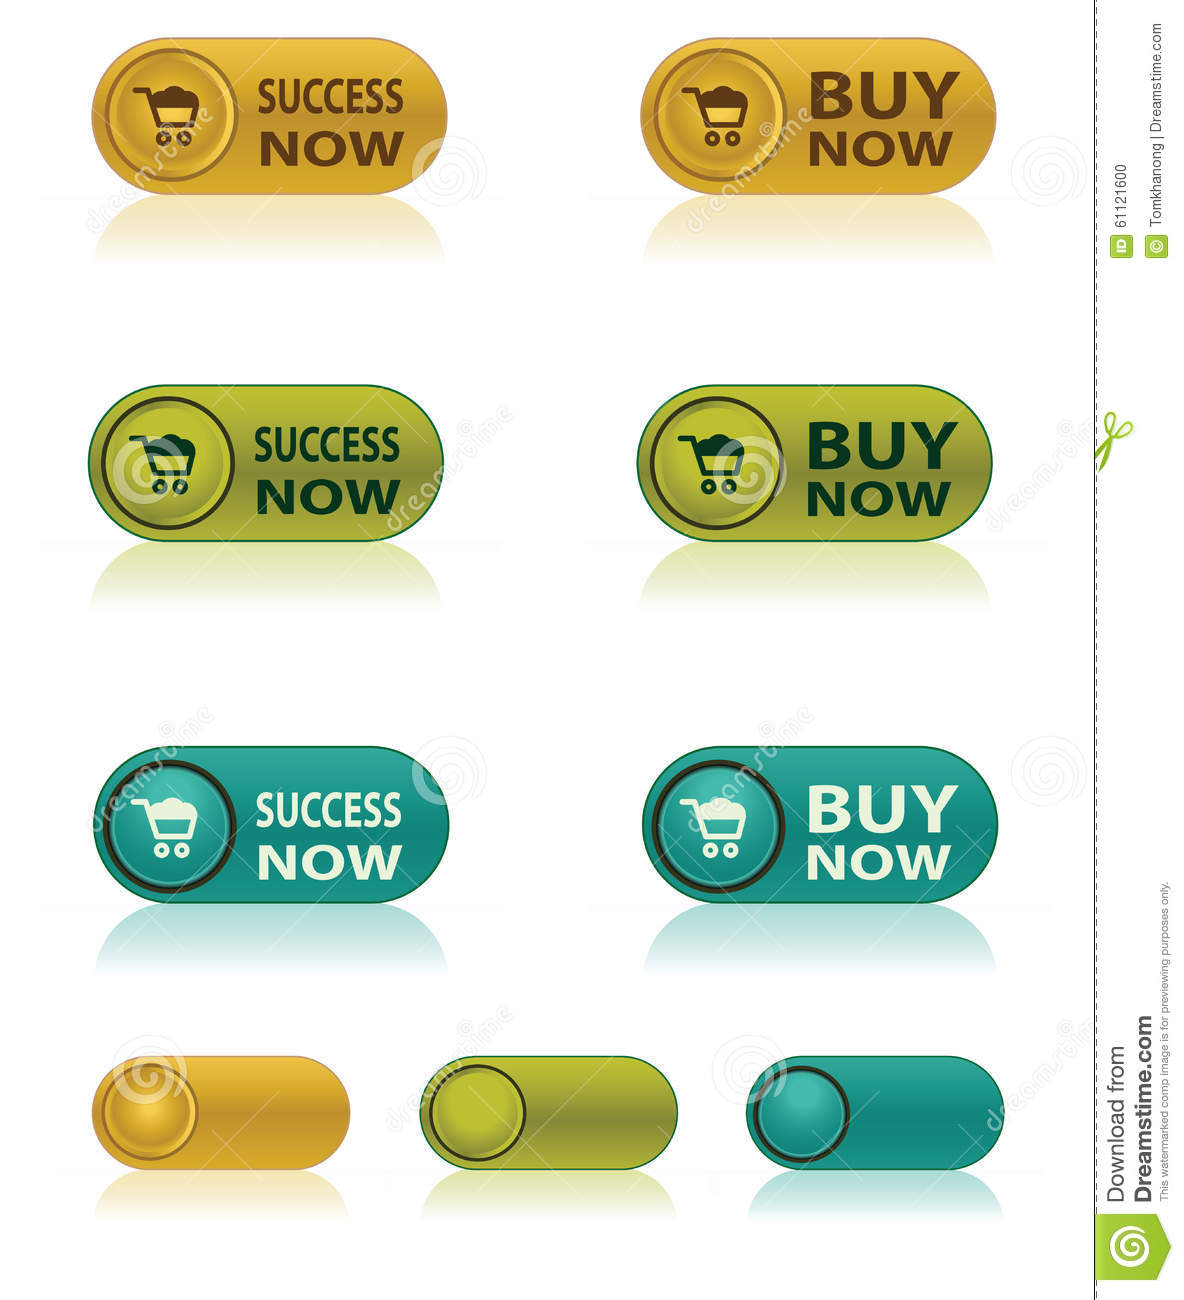 Buy This Now: Buy Now Icon Set Vector Illustration